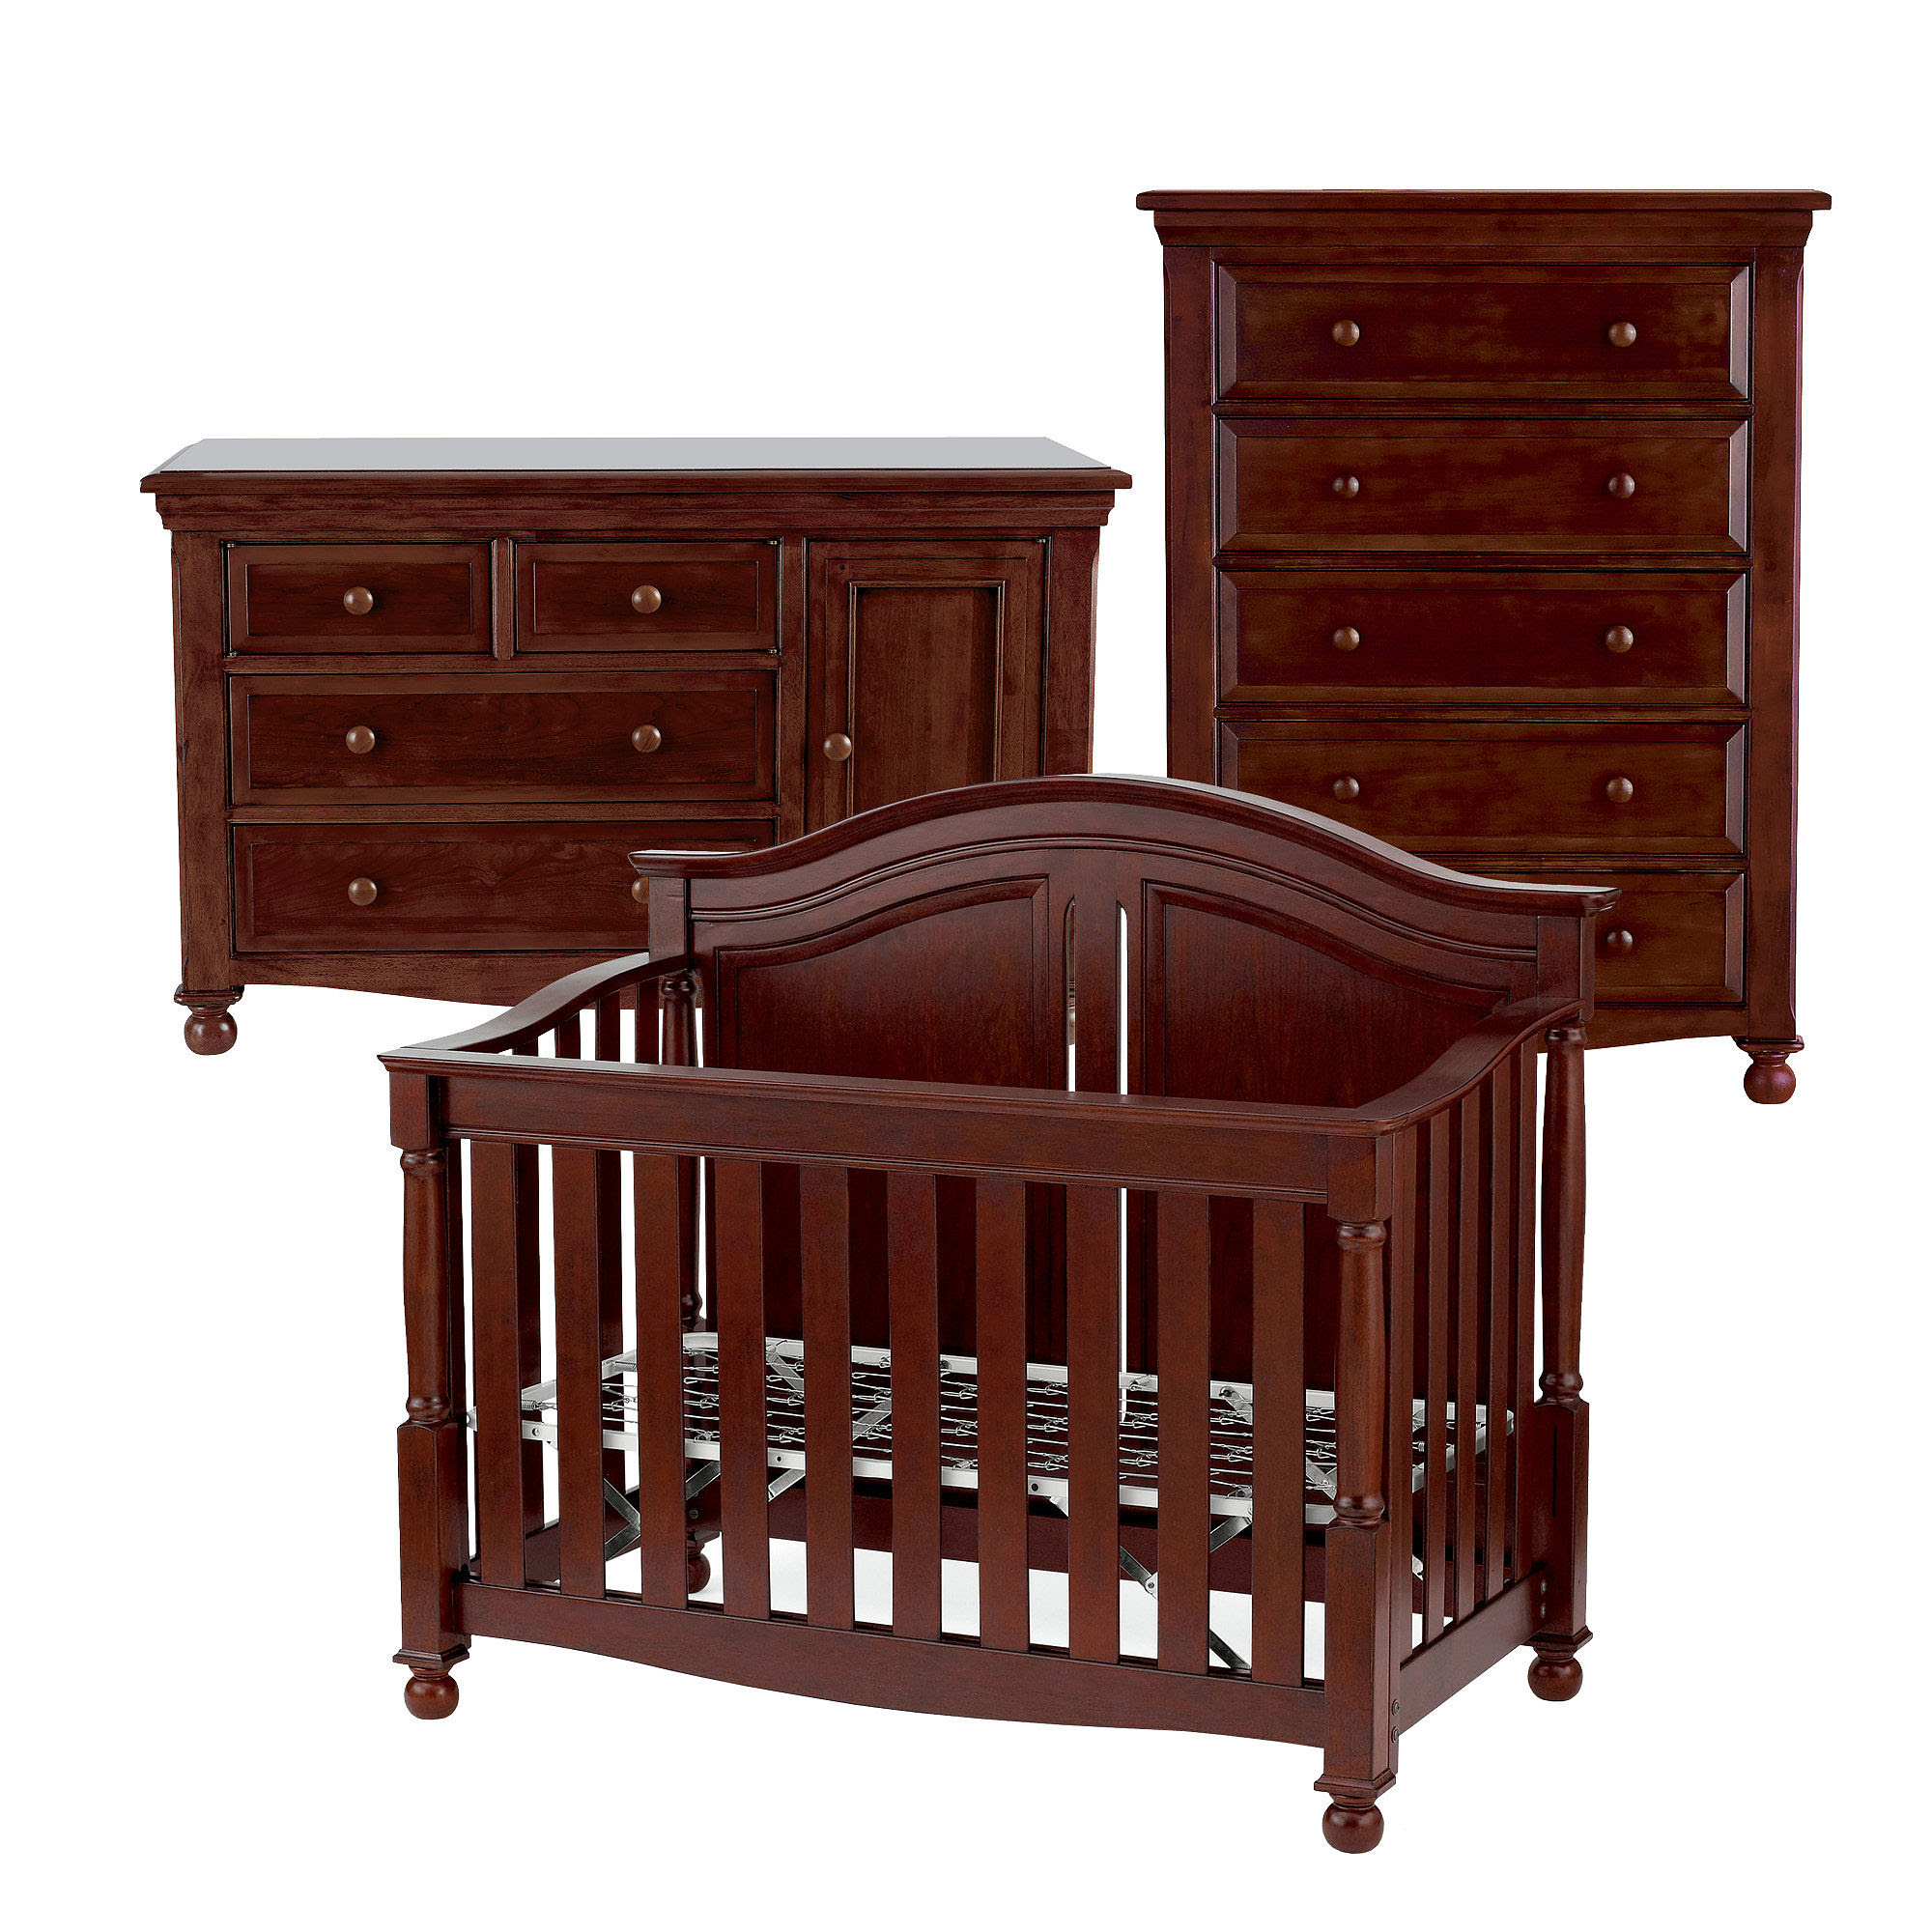 Jcpenney furniture review